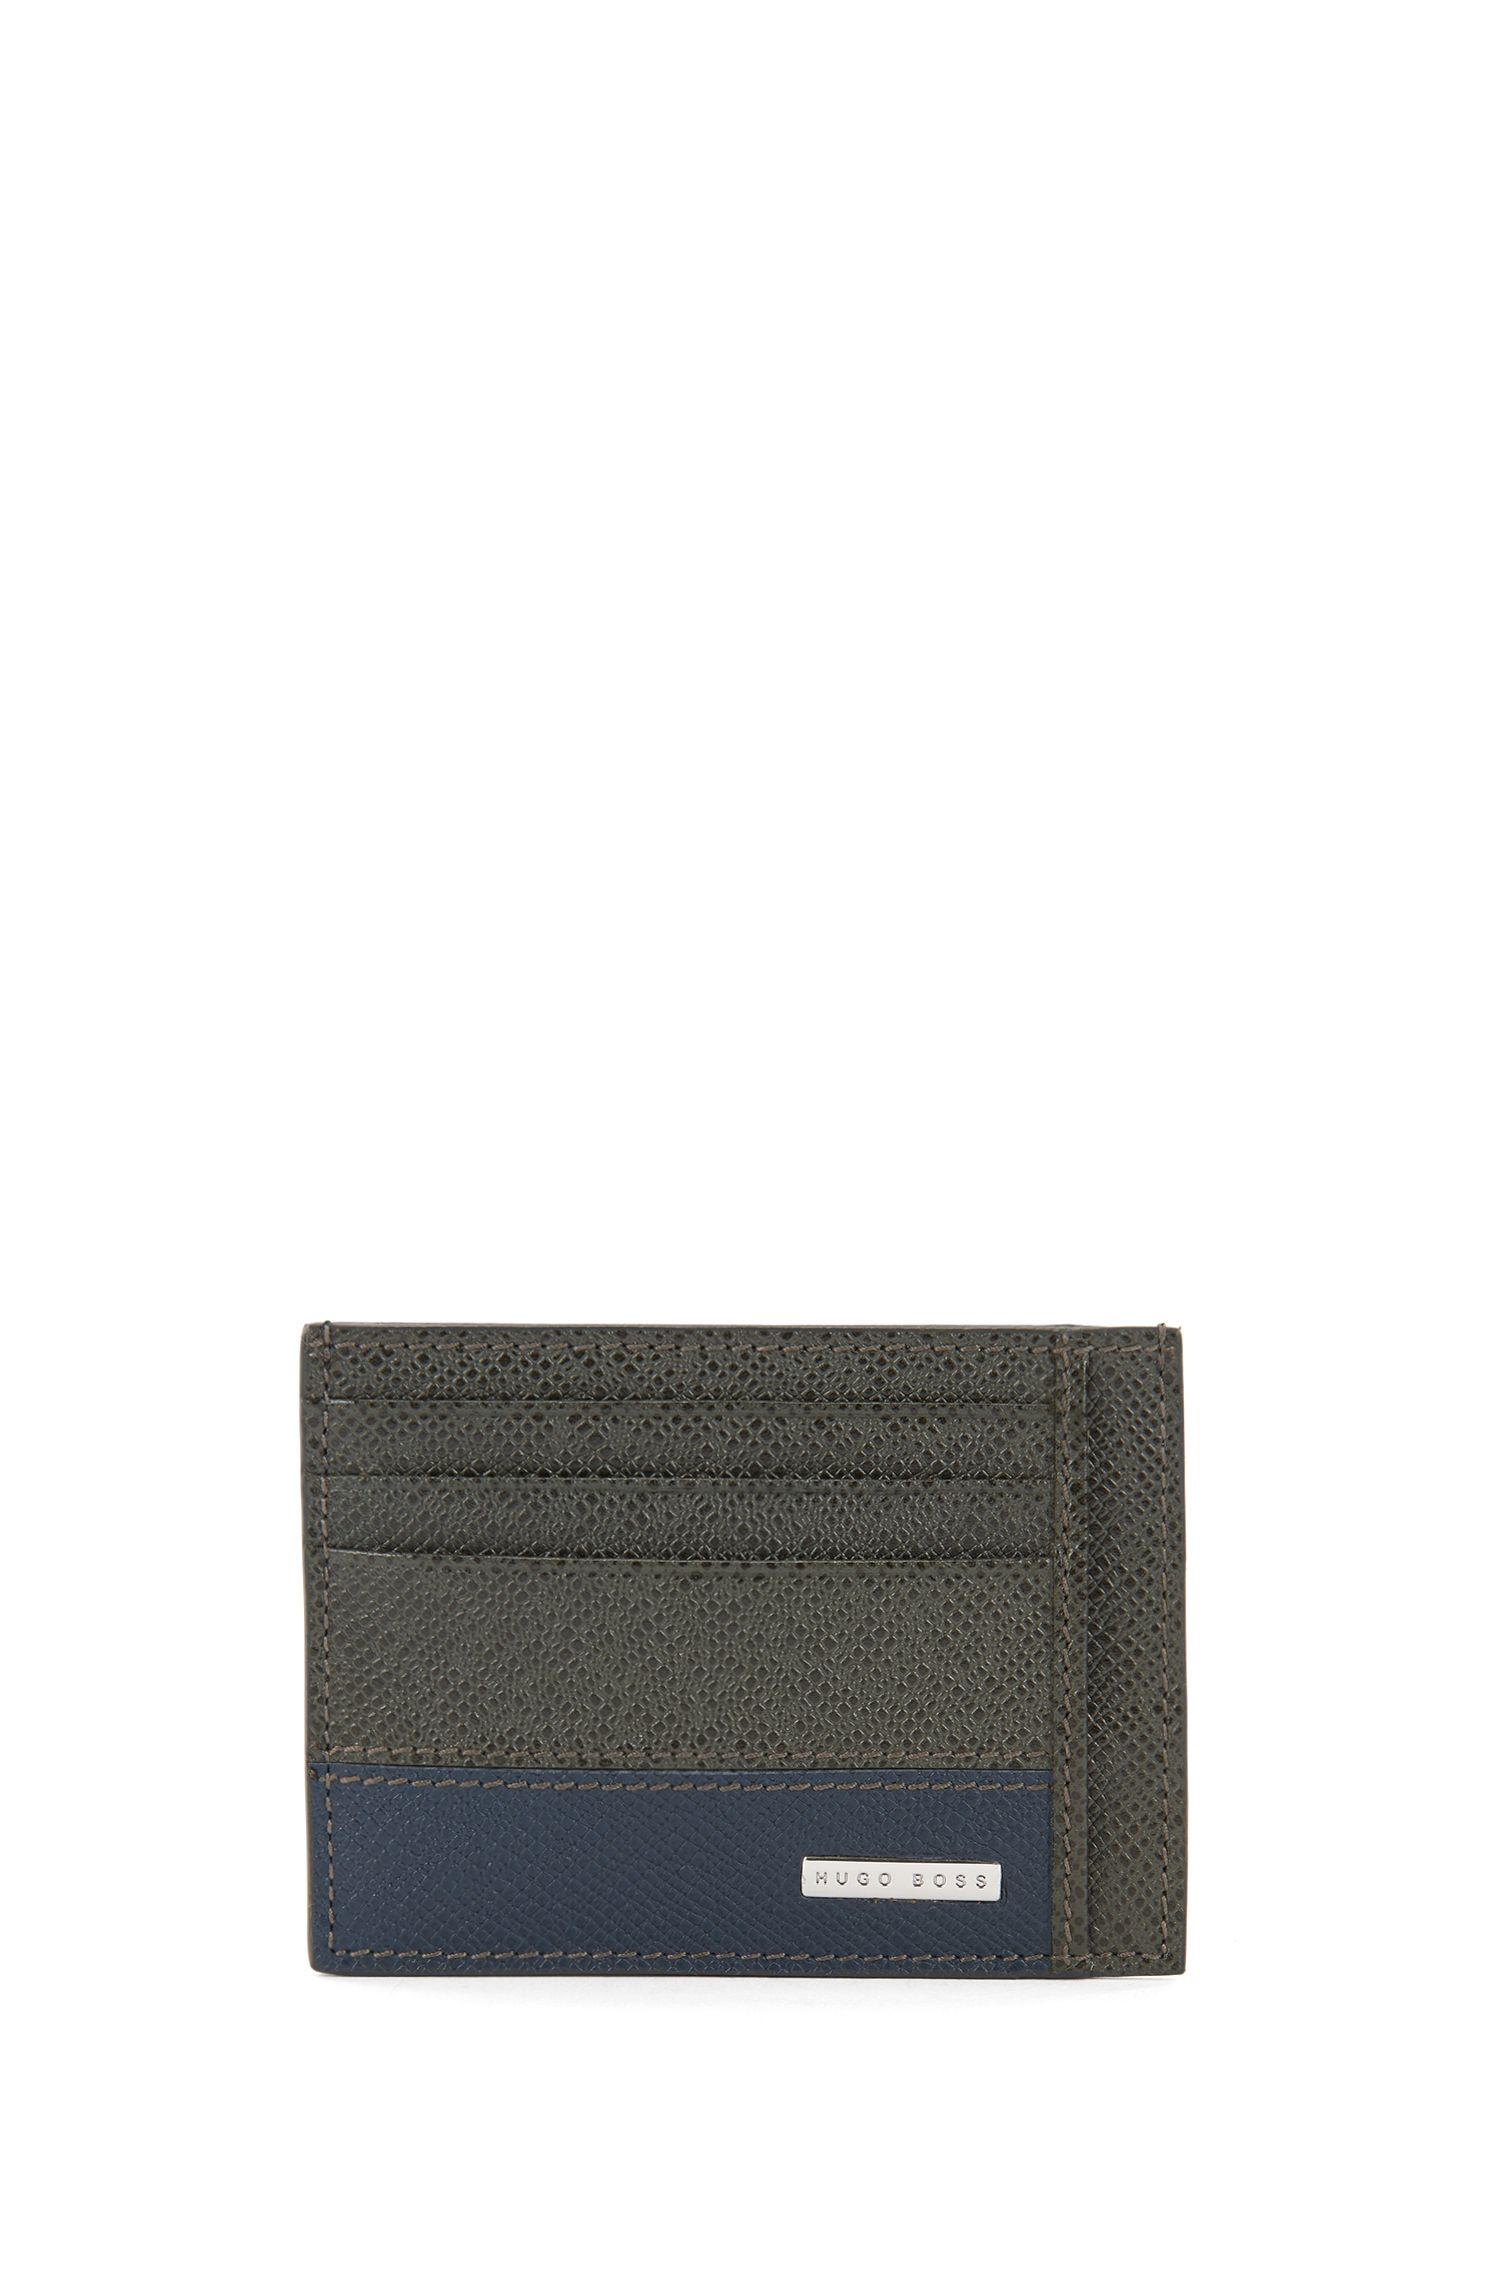 Porte-cartes de la collection Signature, en cuir palmellato color block